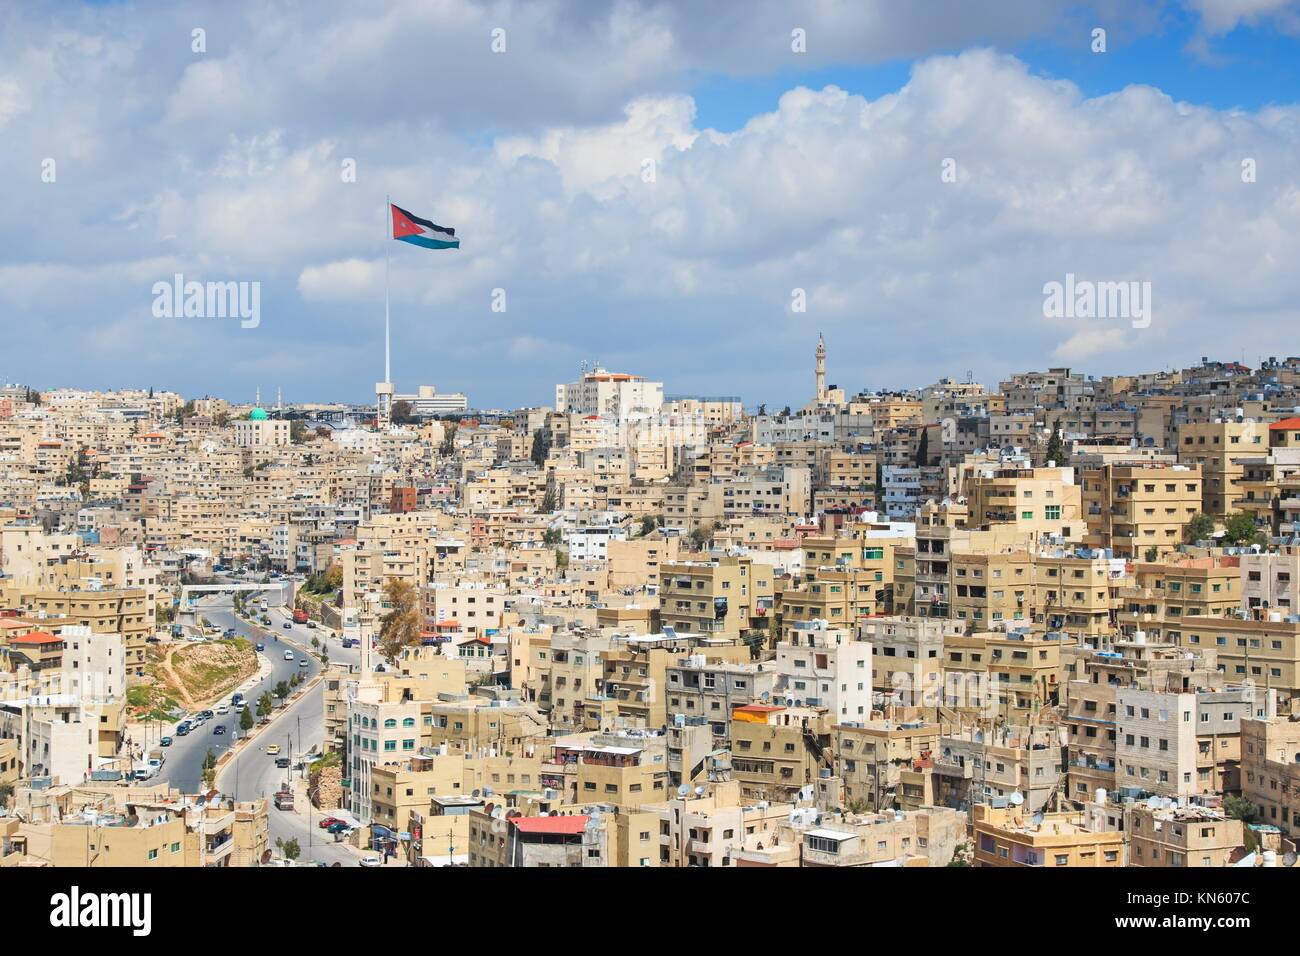 Amman, Jordan: Panoramic view of Amman from one of the hills sorrounding the city. - Stock Image